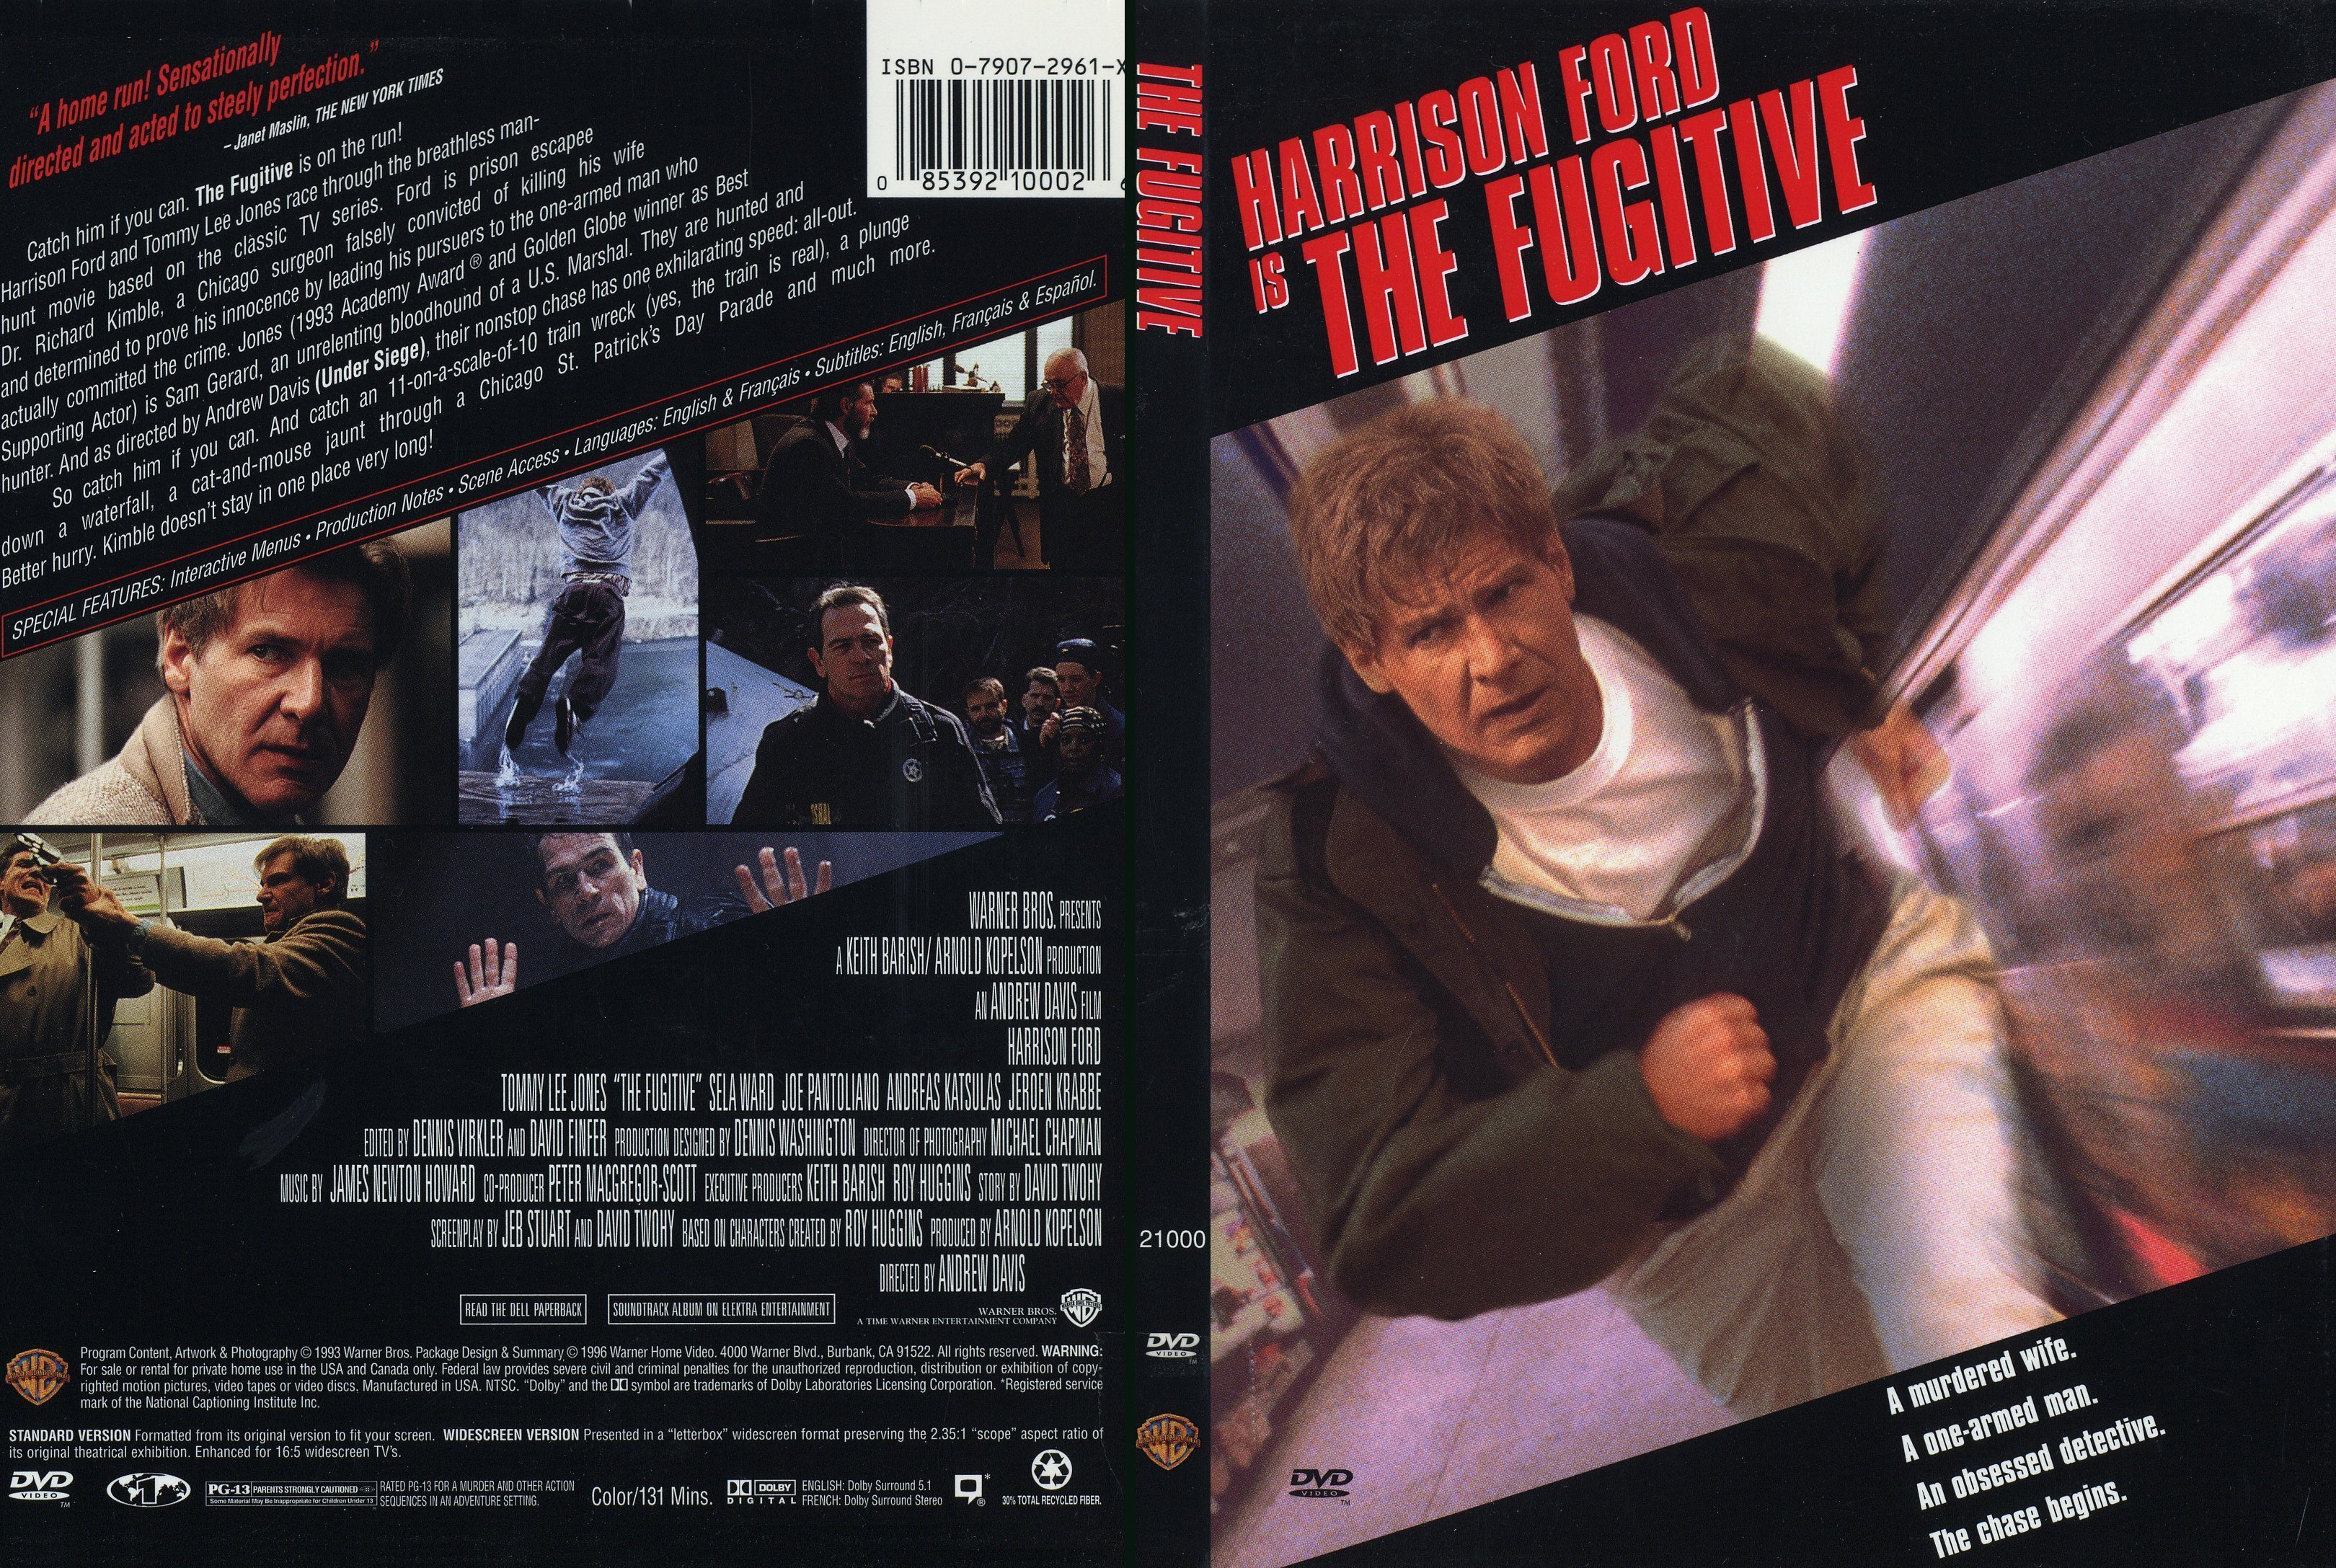 an analysis of the 1993 movie version of the fugitive